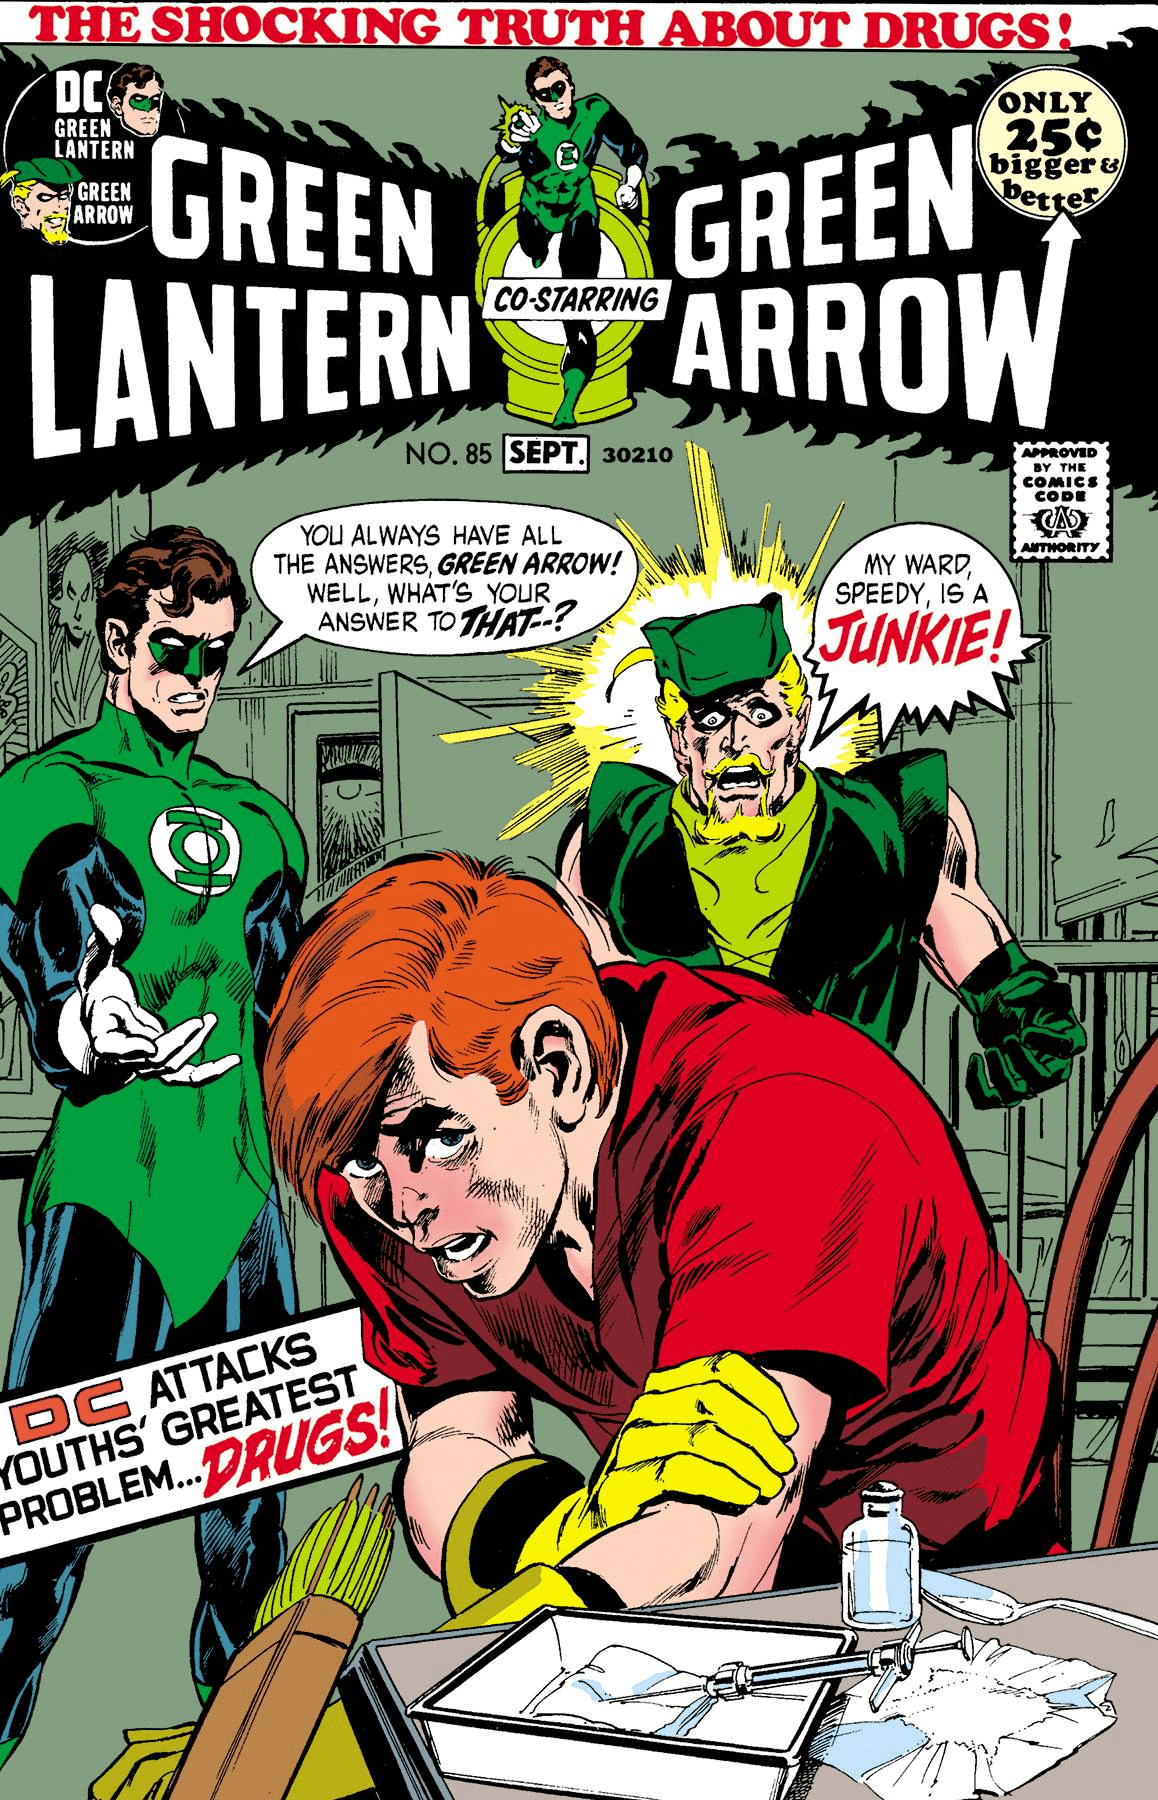 Green Lantern Green Arrow #85 Facsimile Edition |